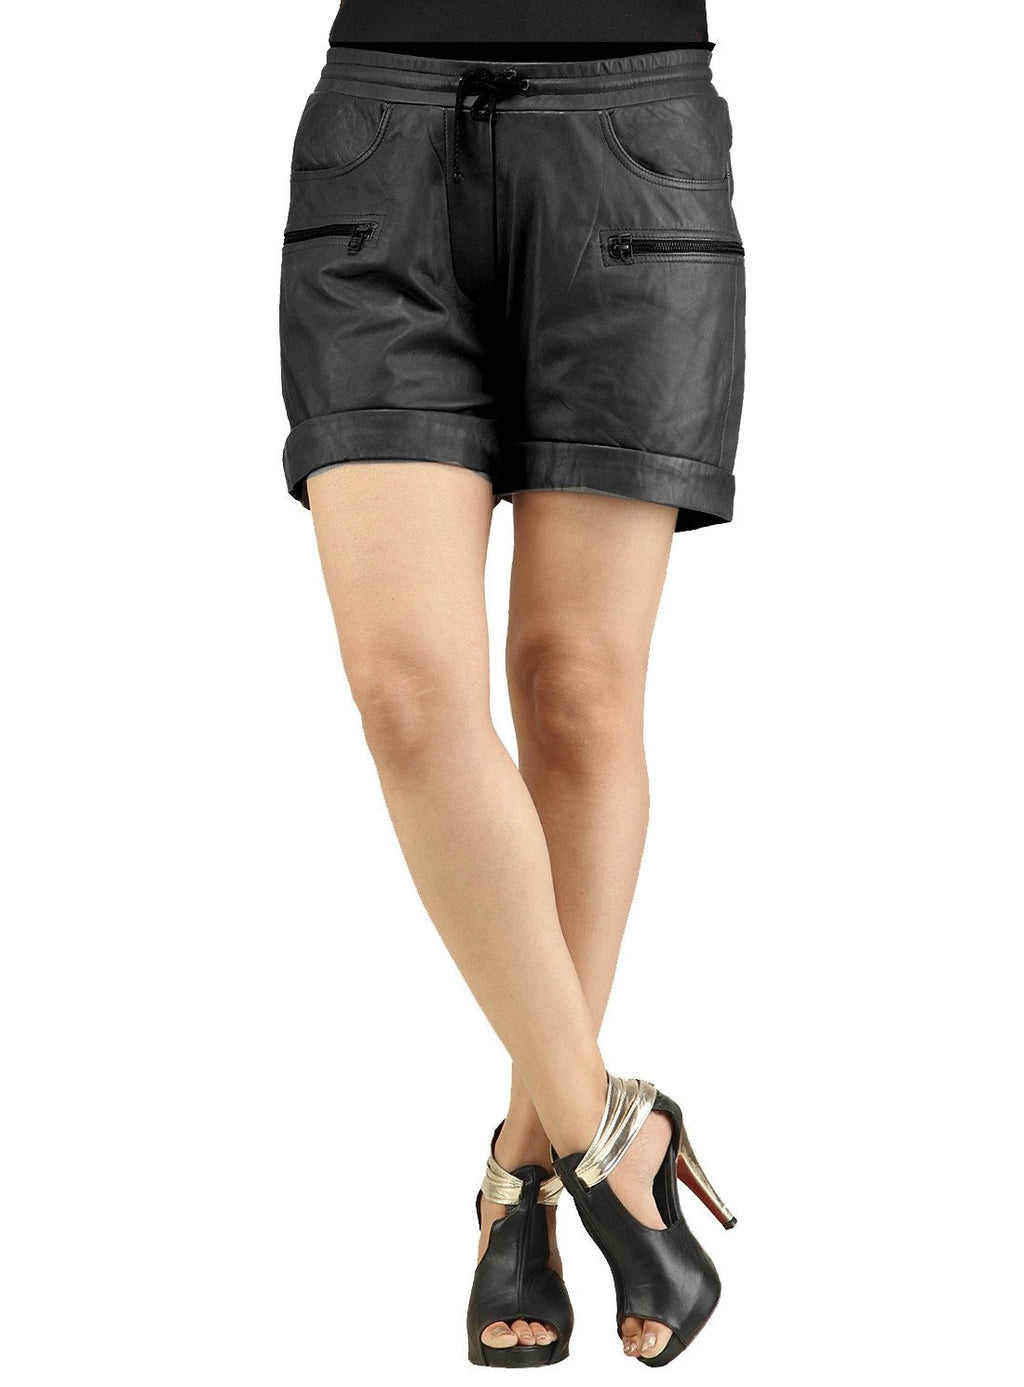 Ladies Leather Casual Shorts S / Leather / Black, Ladies Leather Shorts - CrabRocks, LeatherfashionOnline  - 1